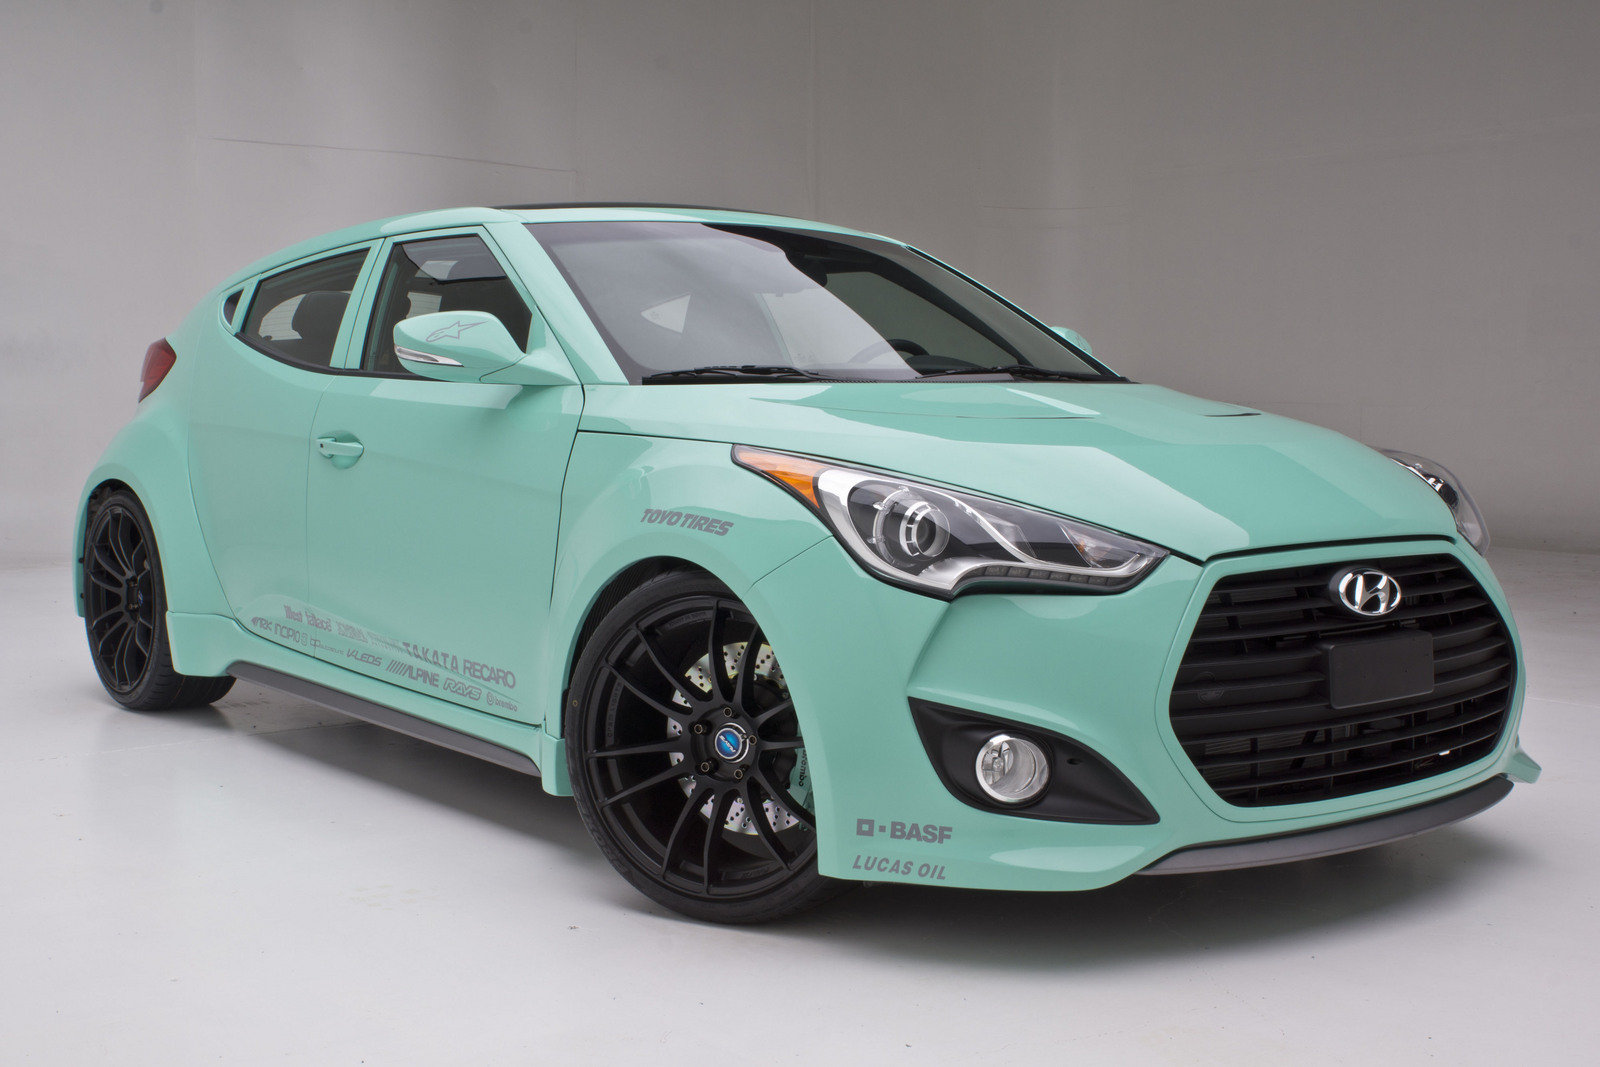 2013 hyundai veloster jp edition review top speed. Black Bedroom Furniture Sets. Home Design Ideas